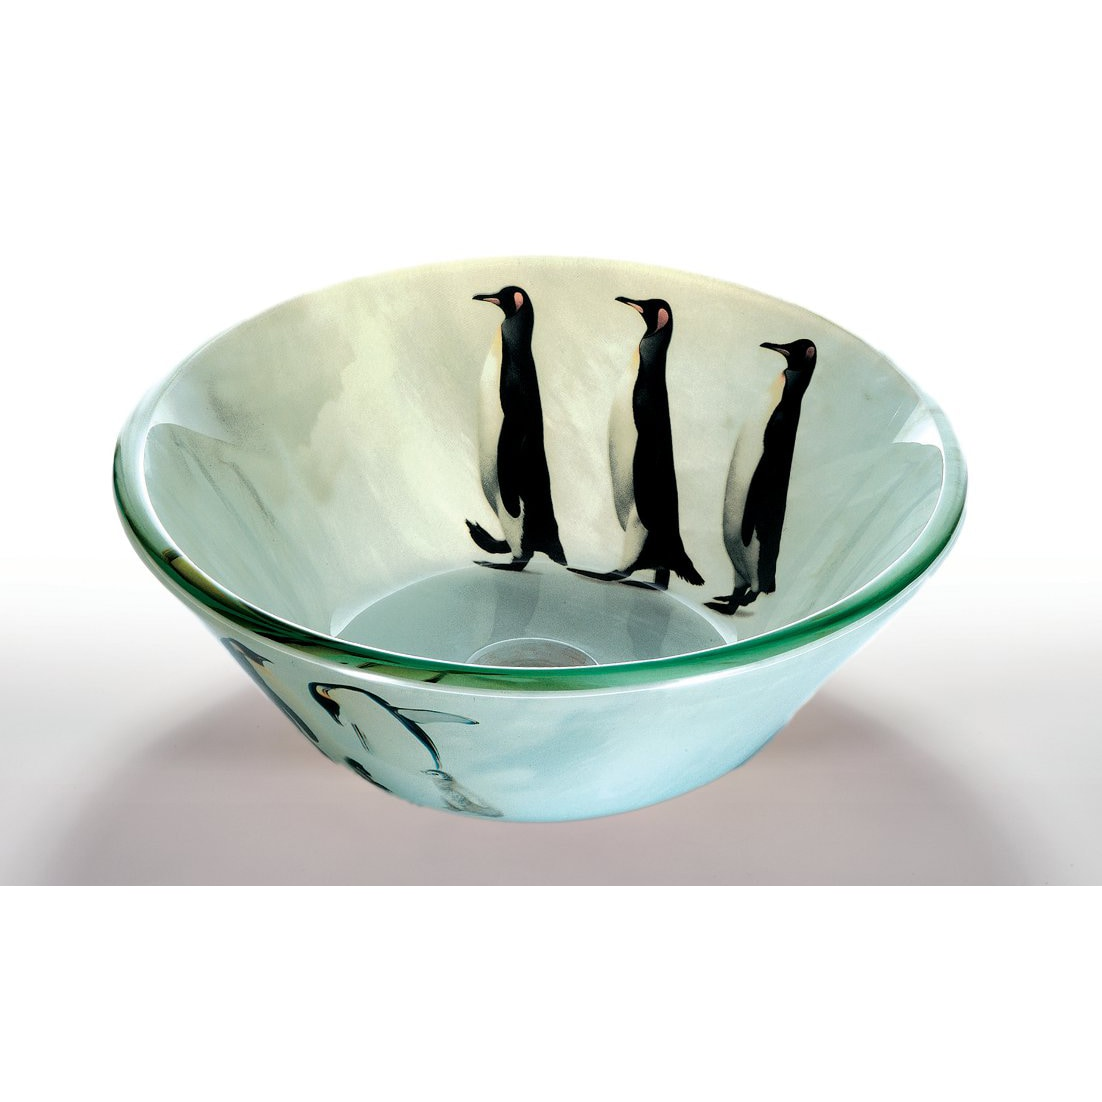 Penguin Glass Bowl Vessel Bathroom Sink